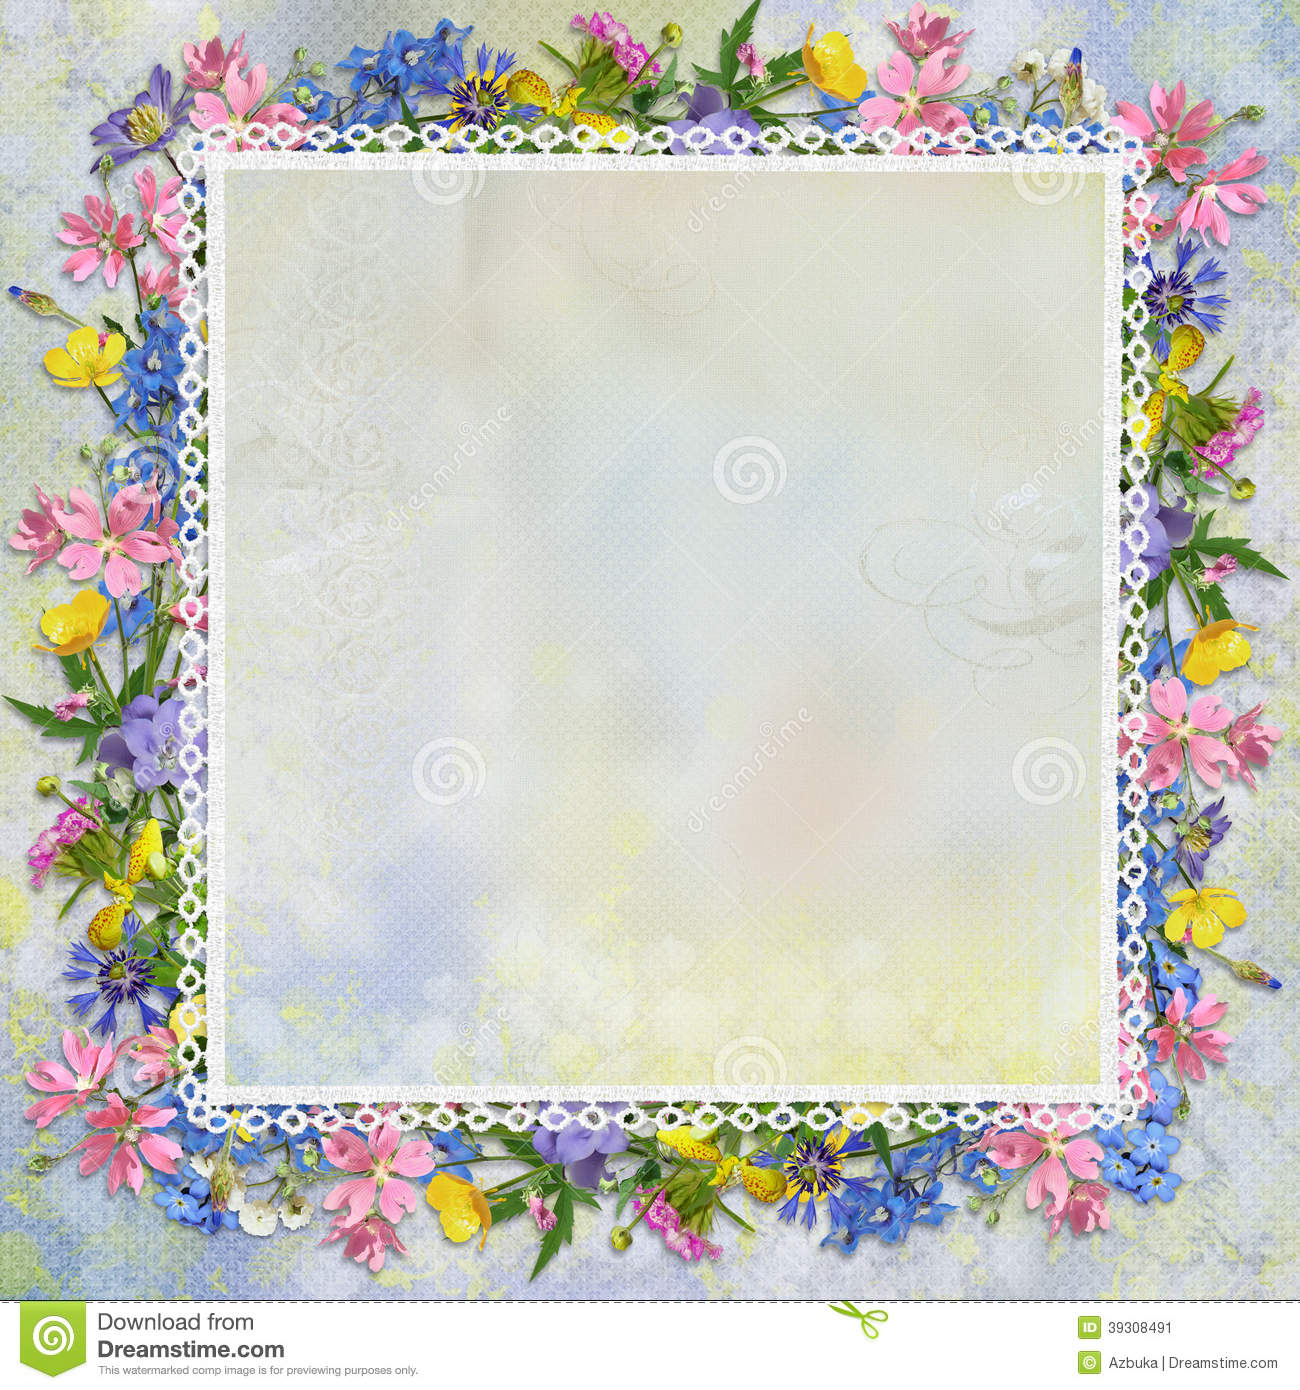 Border Of Flowers On A Gentle Background Stock Illustration.